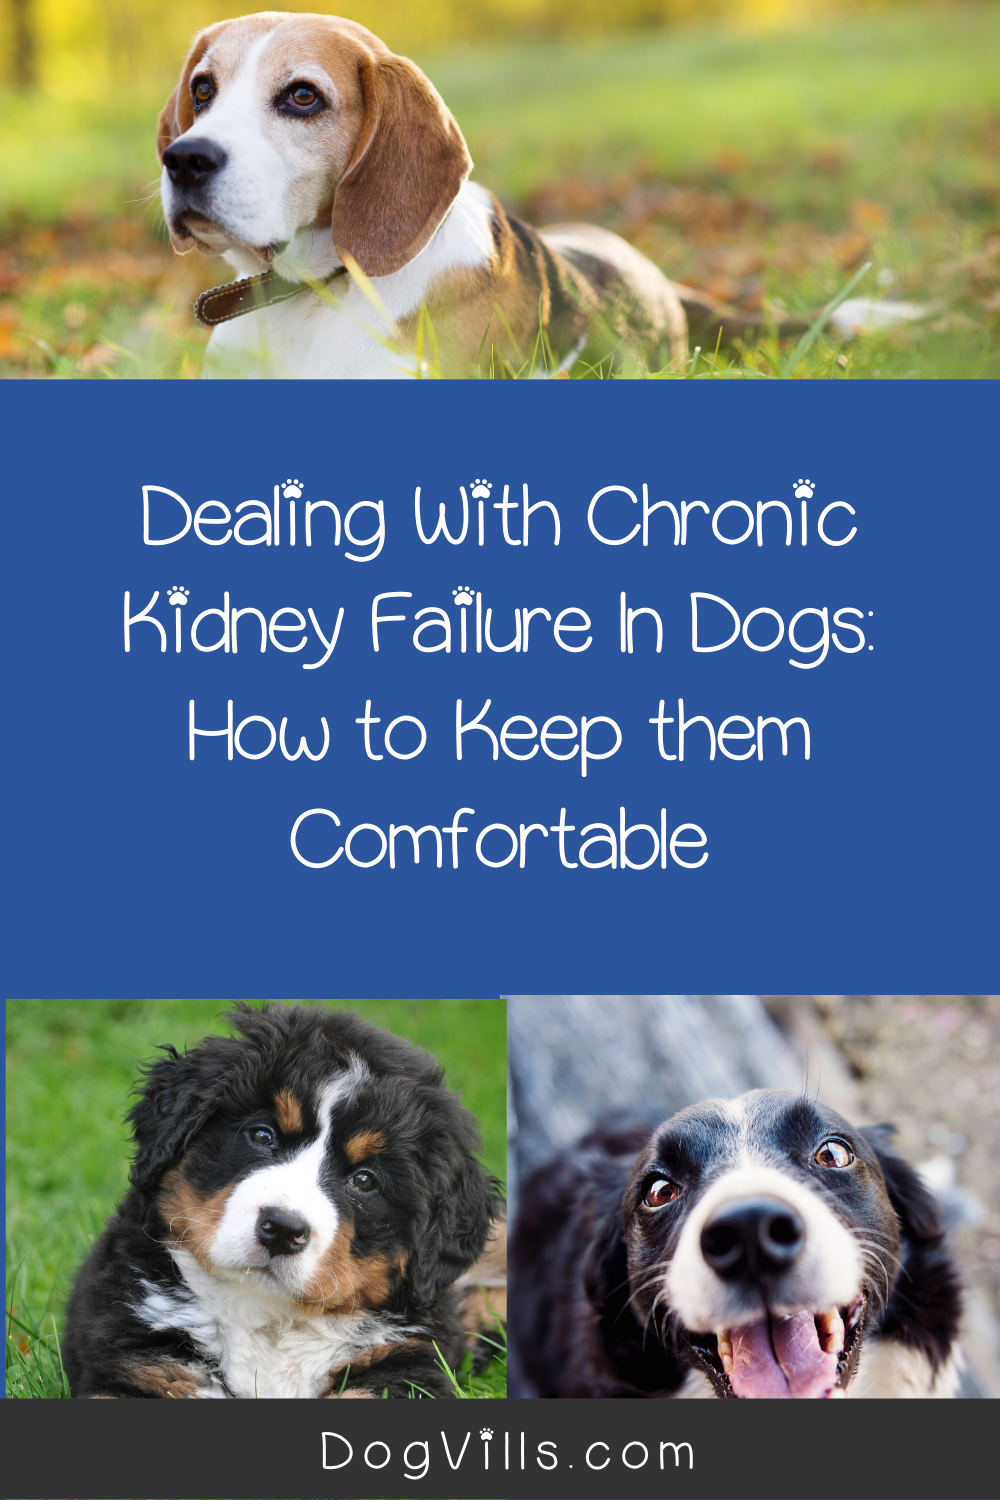 Dealing With Chronic Kidney Failure In Dogs How To Keep Them Comfortable Dogvills In 2020 Chronic Kidney Failure Dogs Chronic